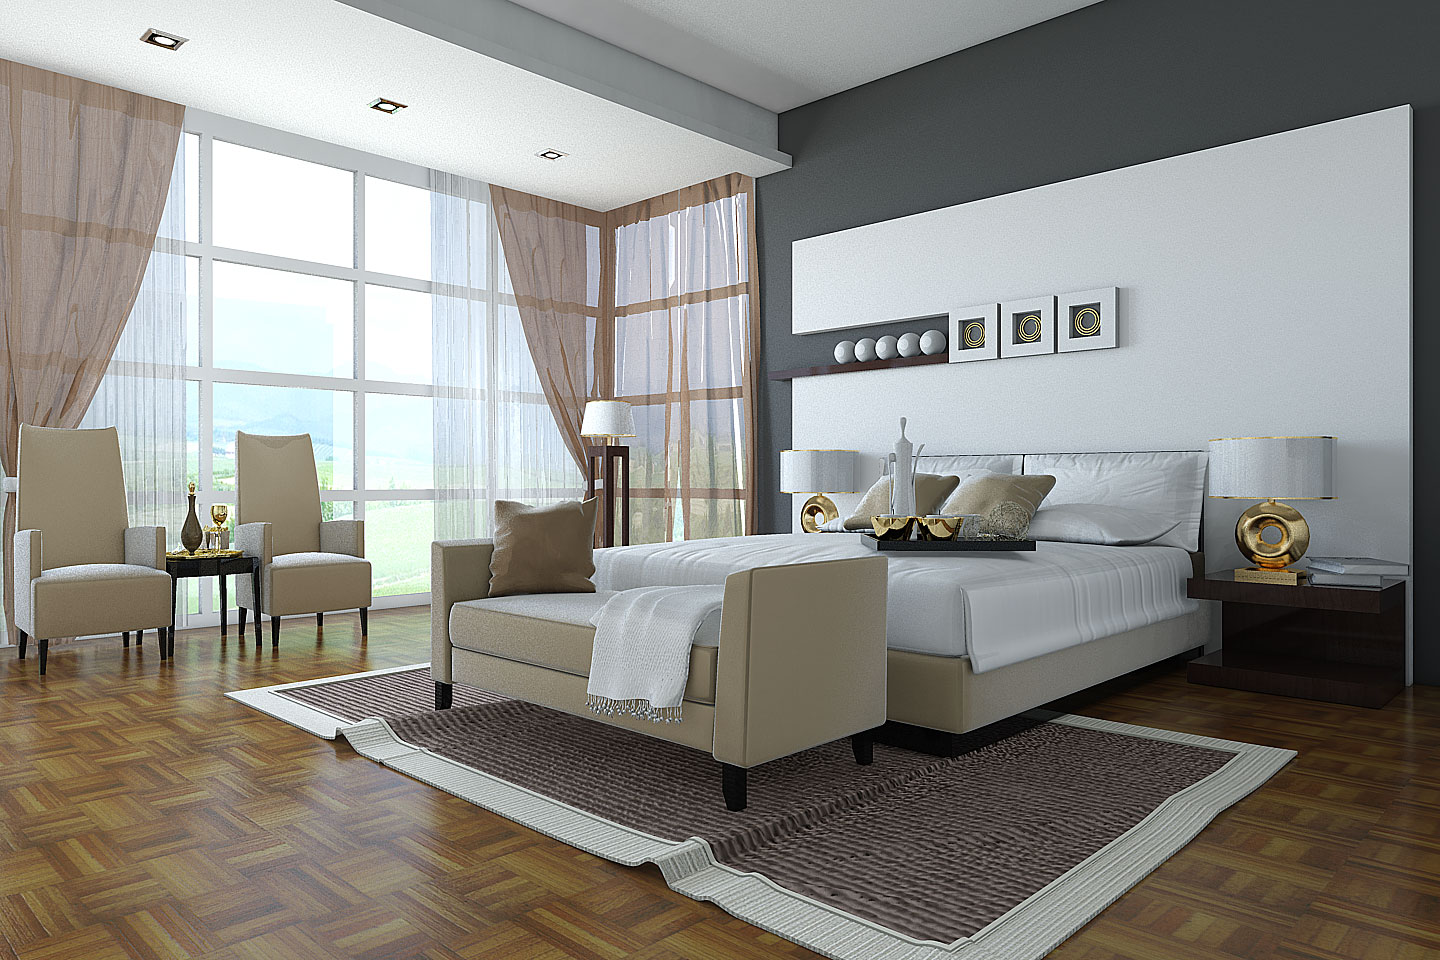 Pictures Of Bedroom Designs beautiful bedrooms